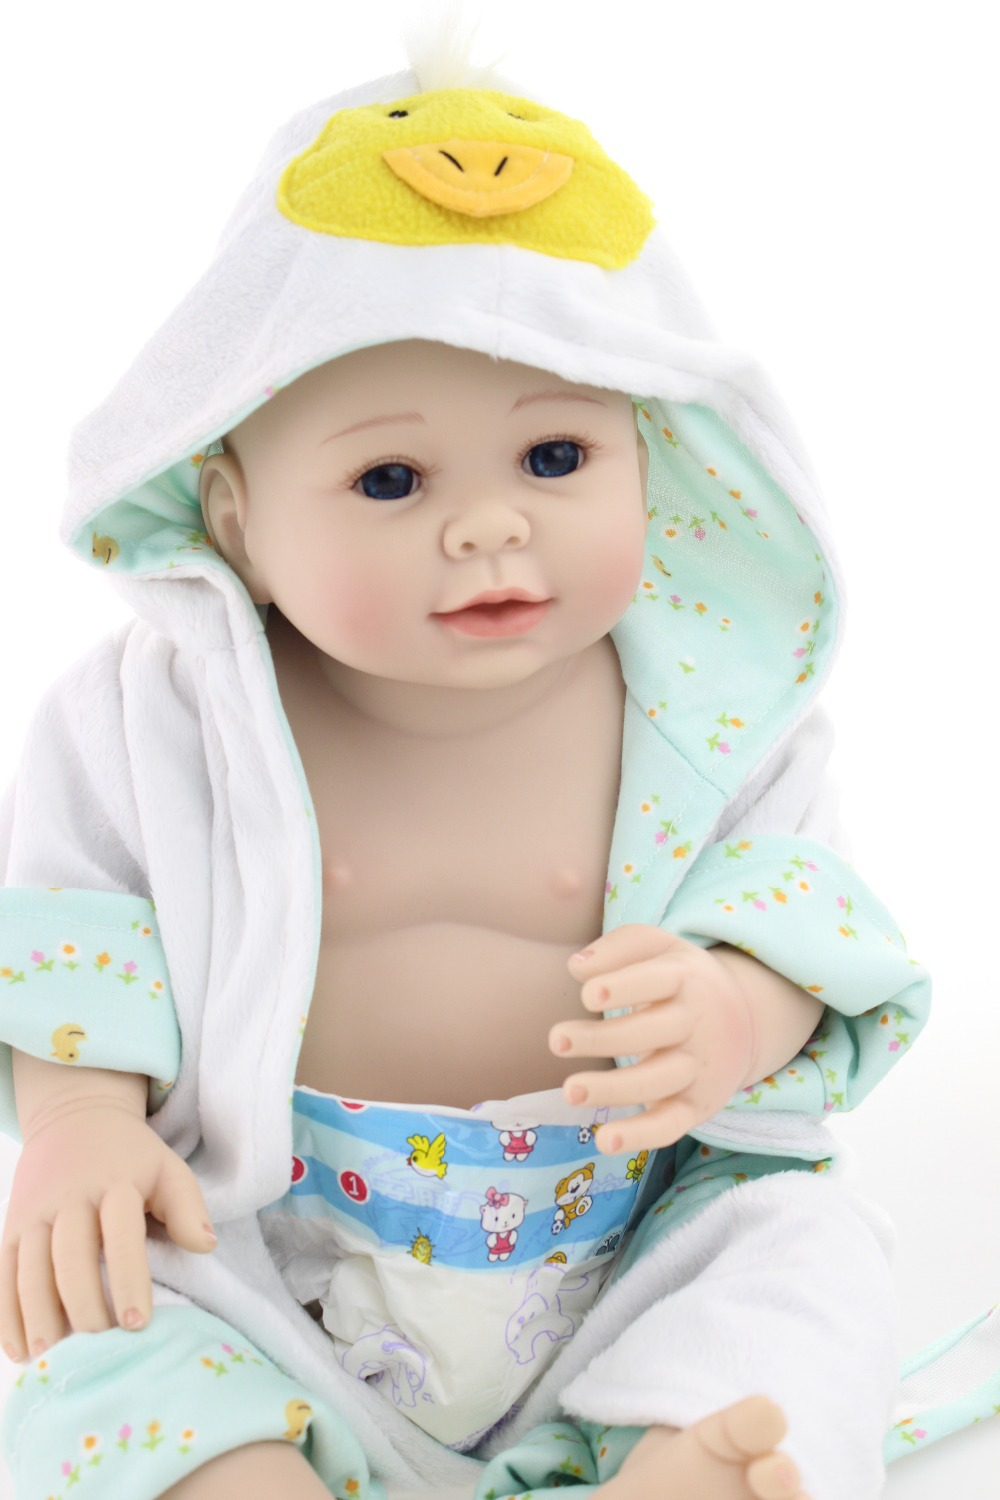 2015new design lifelike reborn baby doll full vinyl body soft touch Christmas gift краска для тела other 1piece 2015new aa